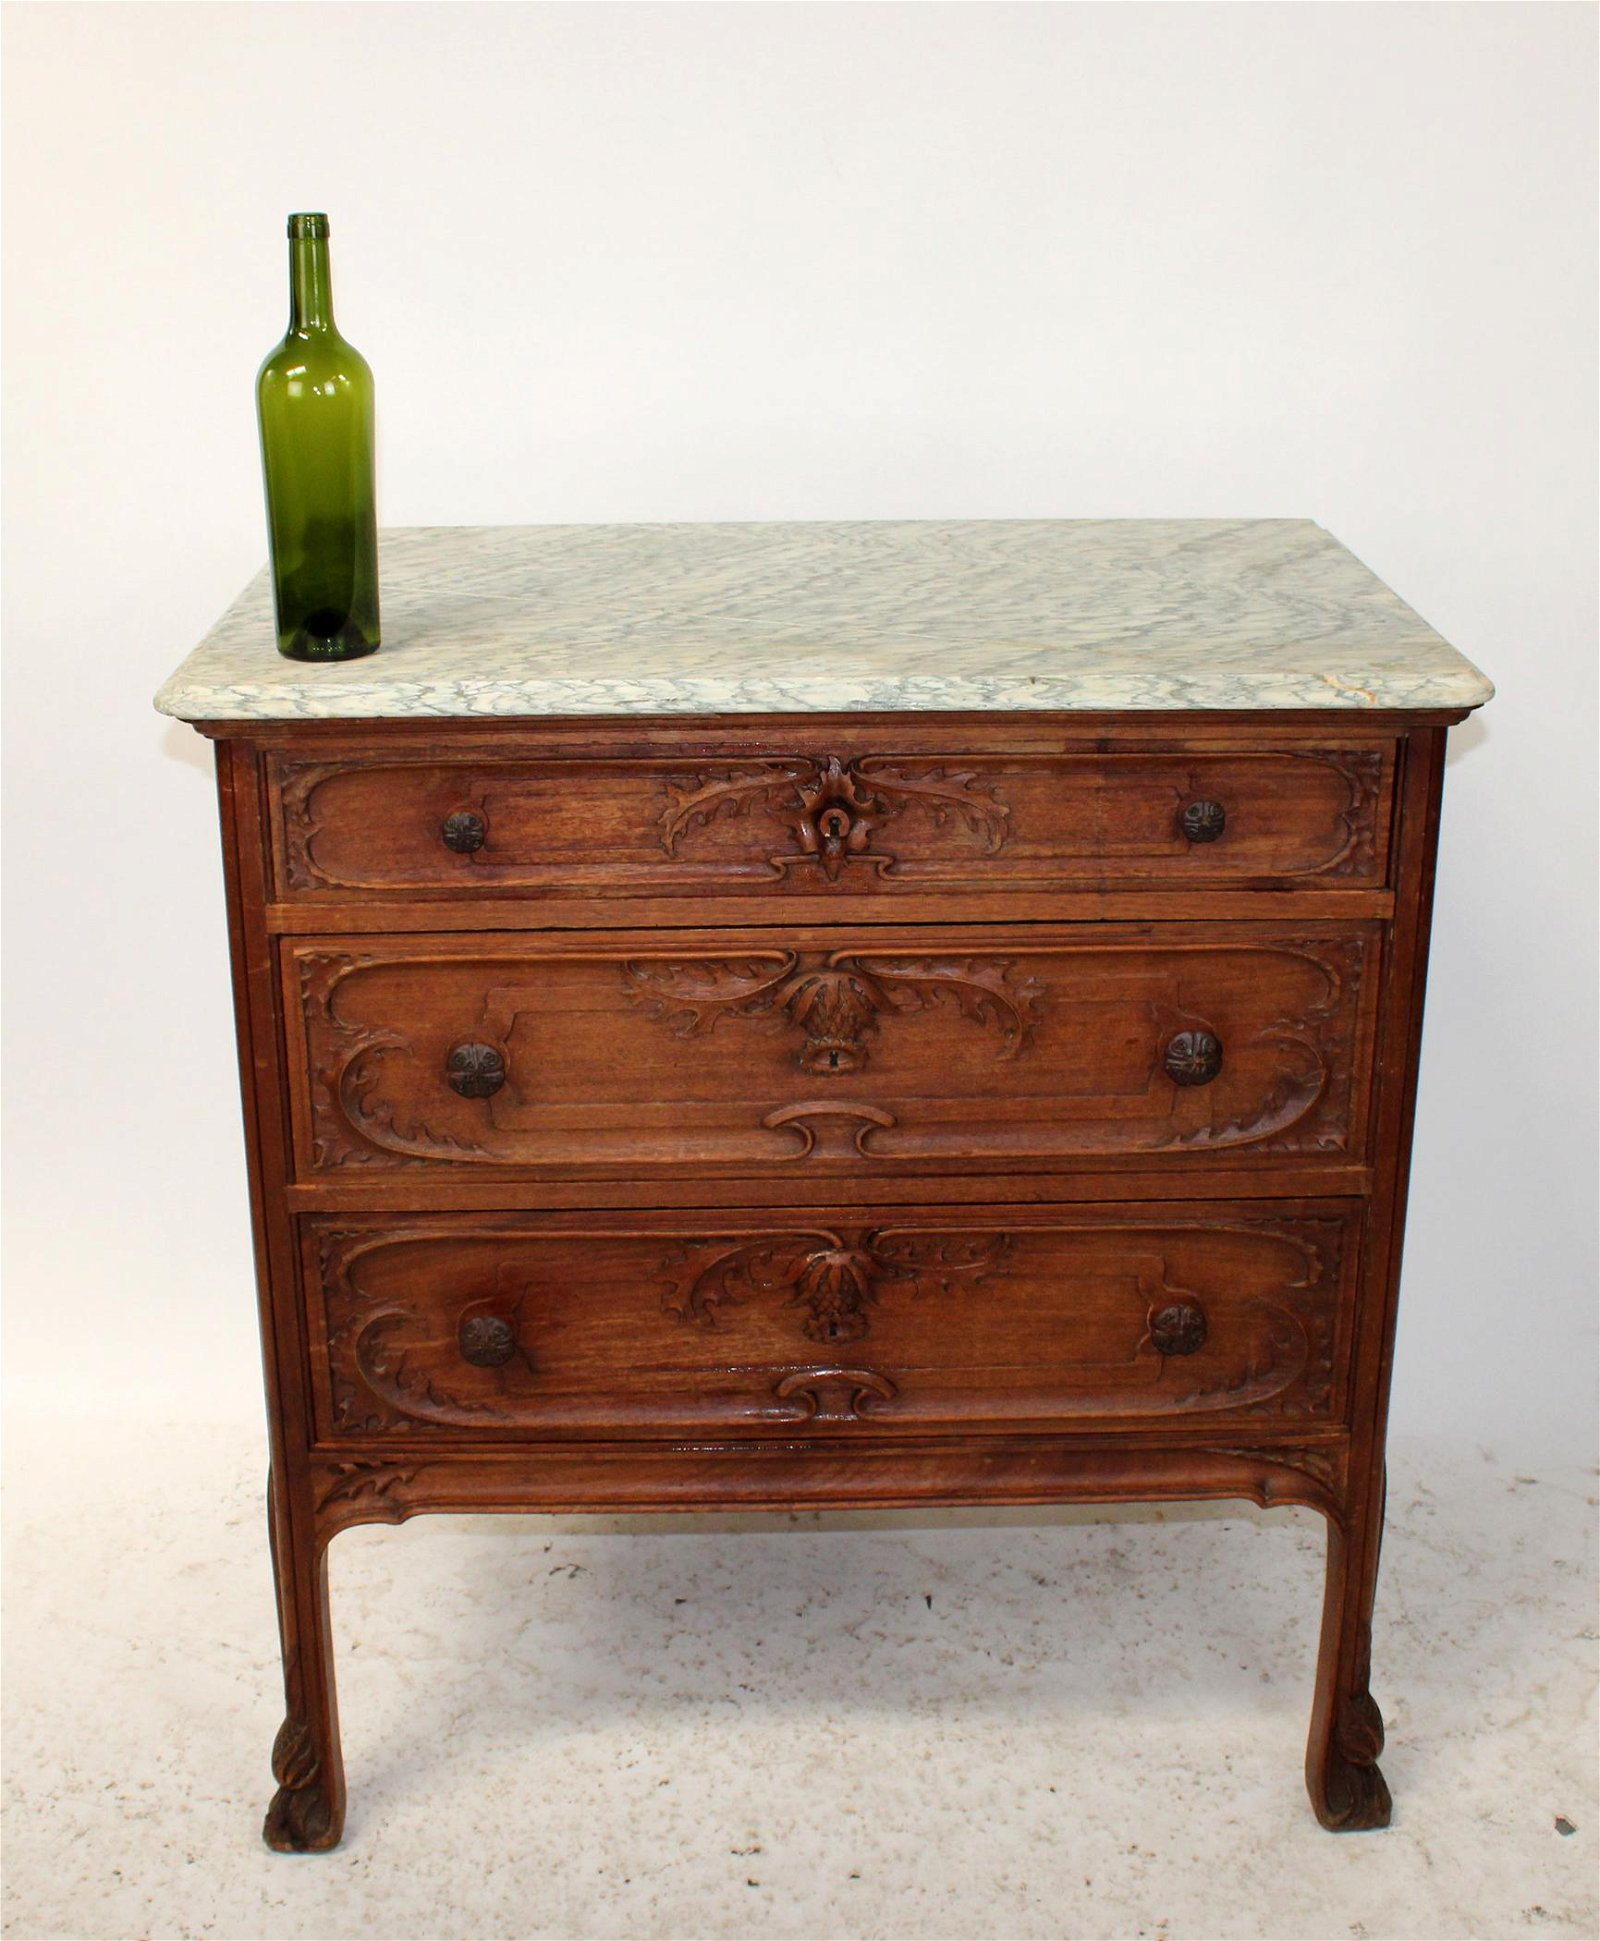 French Art Nouveau commode from Nancy France